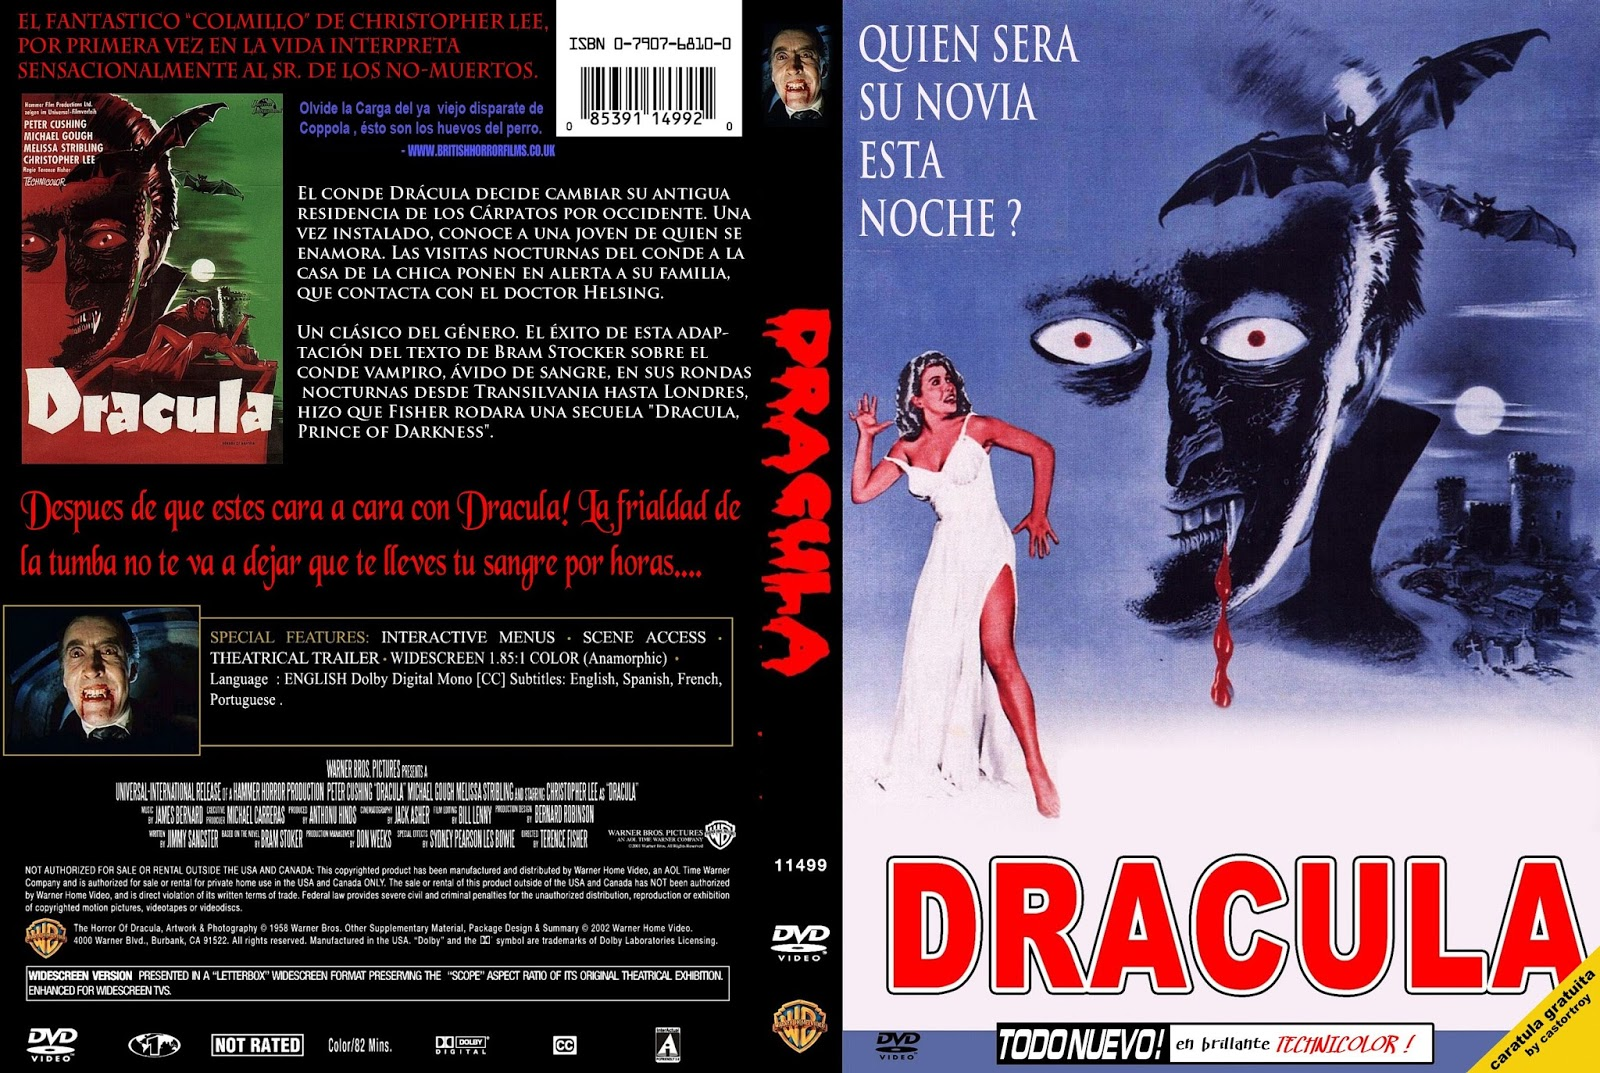 draculas eternal life Dracula bram stoker's dracula is one of the most renowned british novels of all time it has left its marks on many aspects of literature and film it has left its marks on many aspects of literature and film.